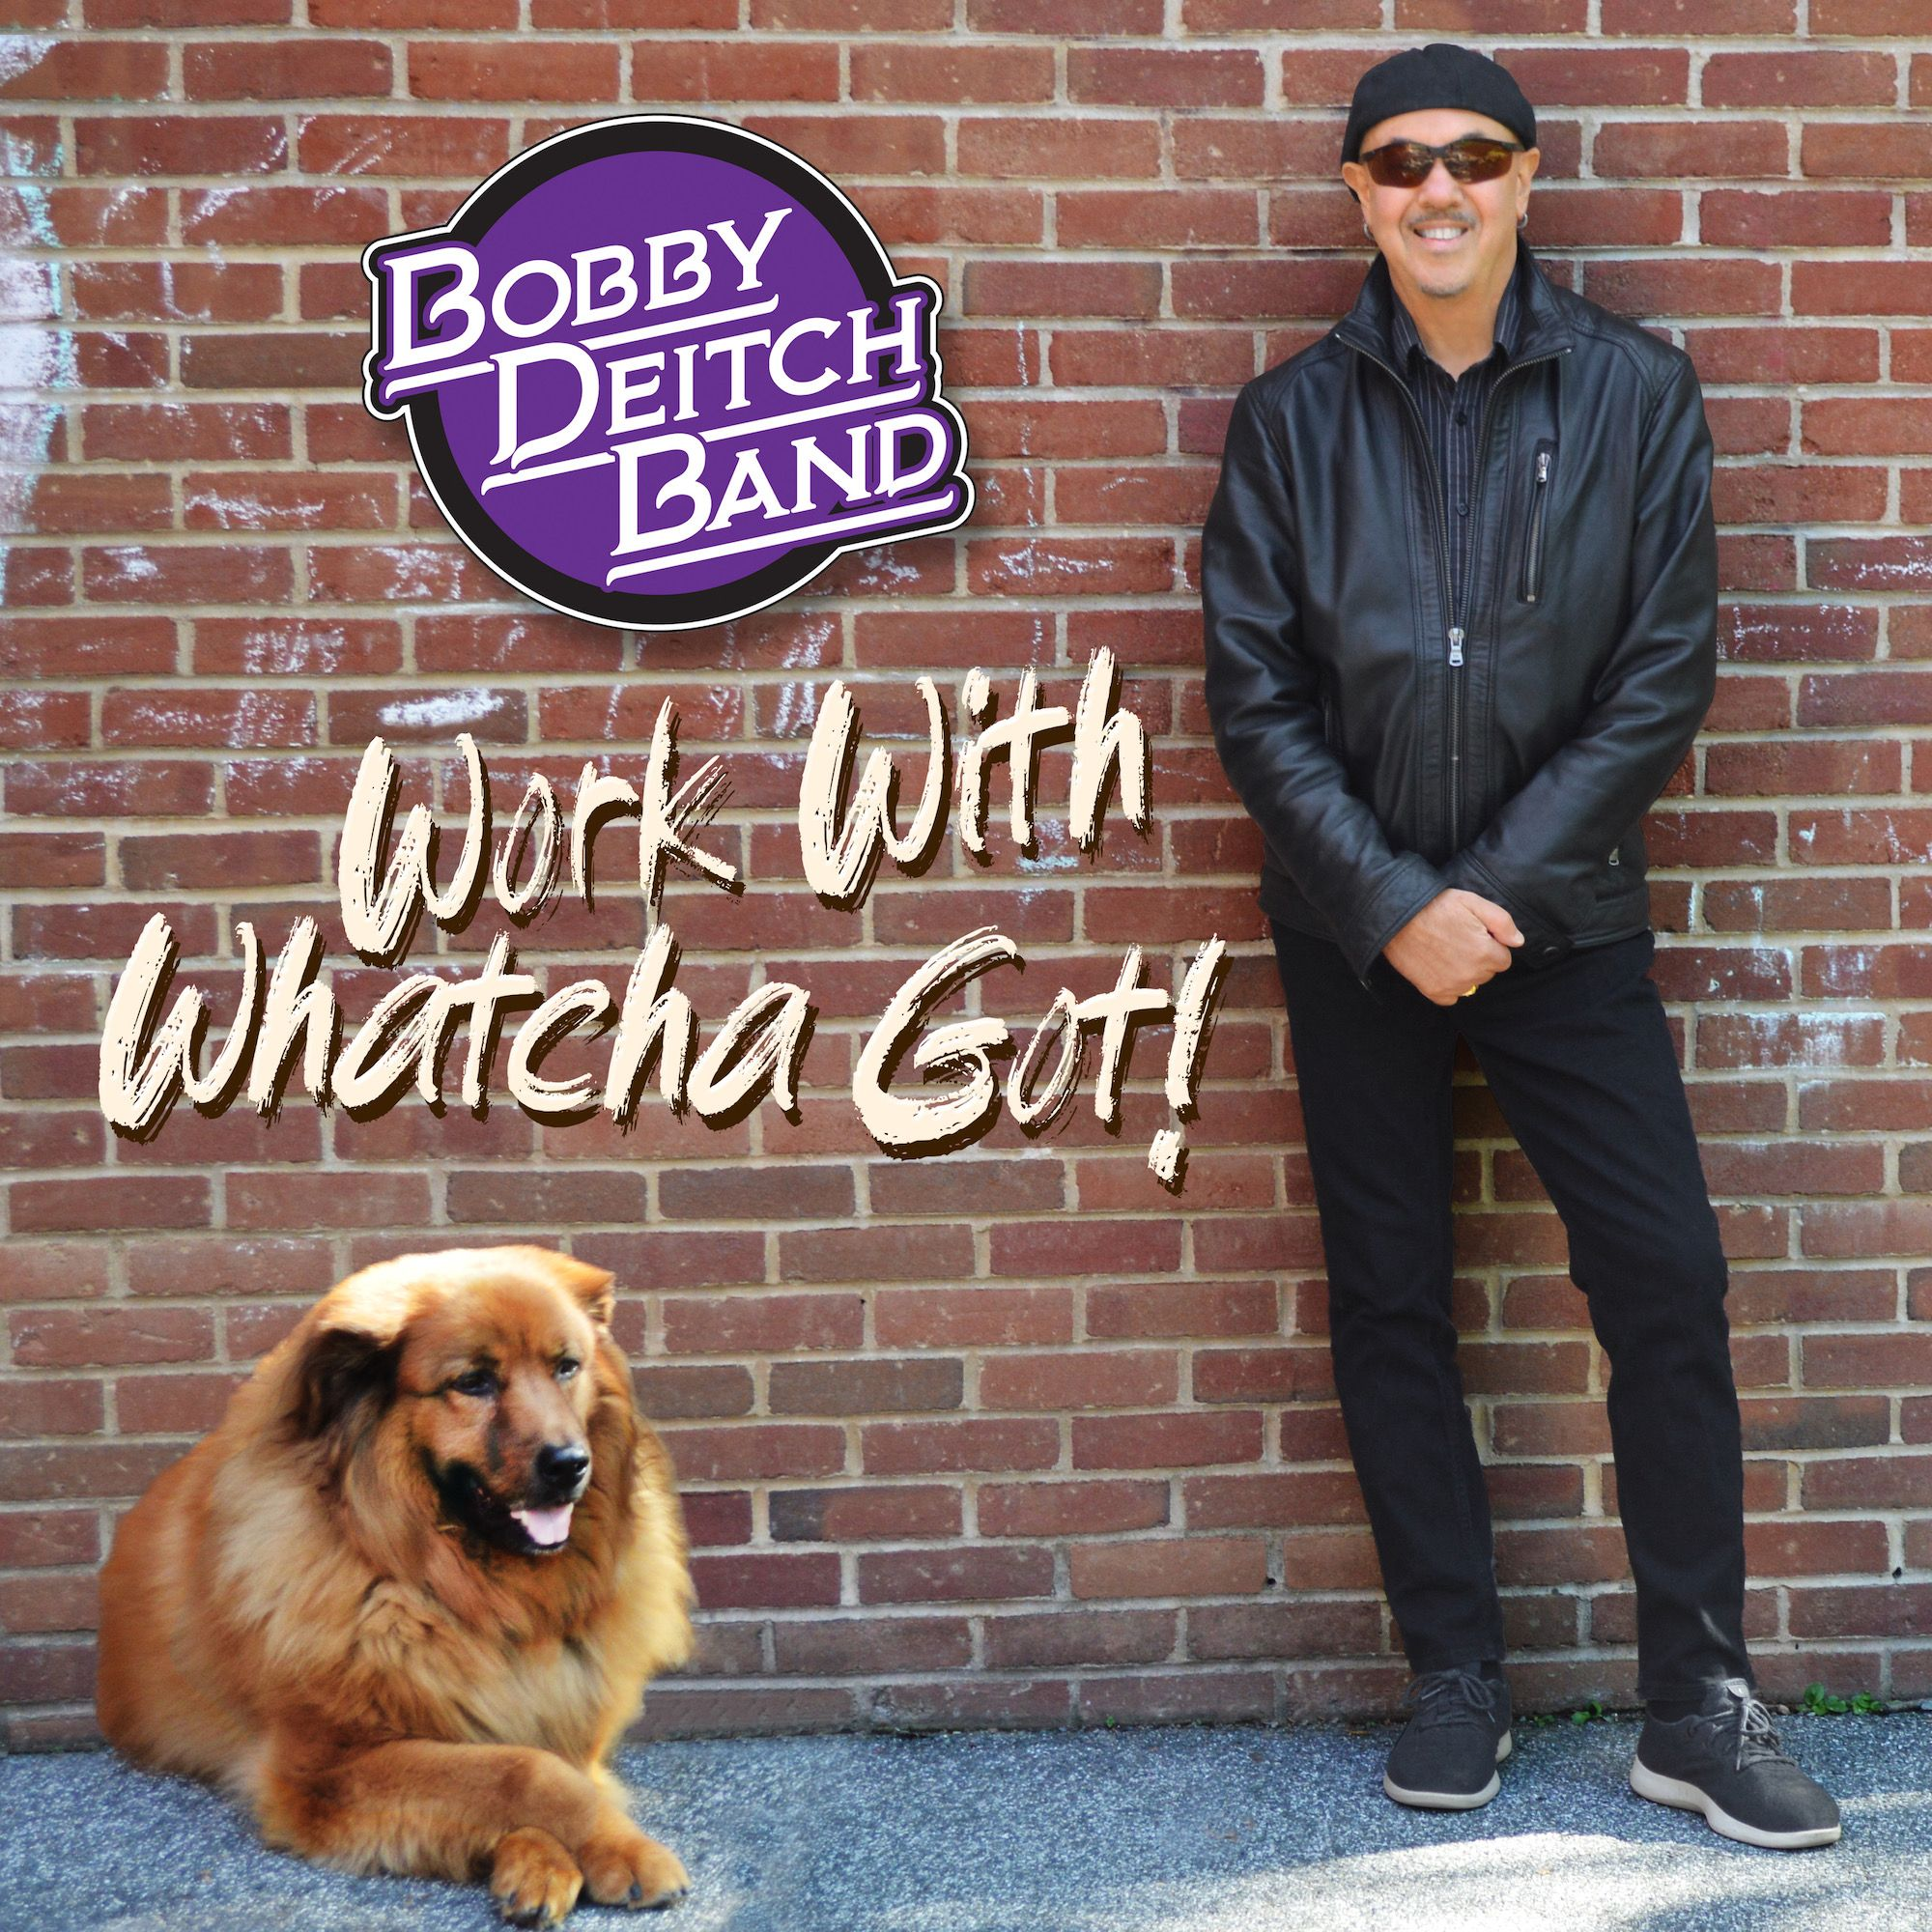 Bobby Deitch Band To Drop Title Track Off Upcoming Album